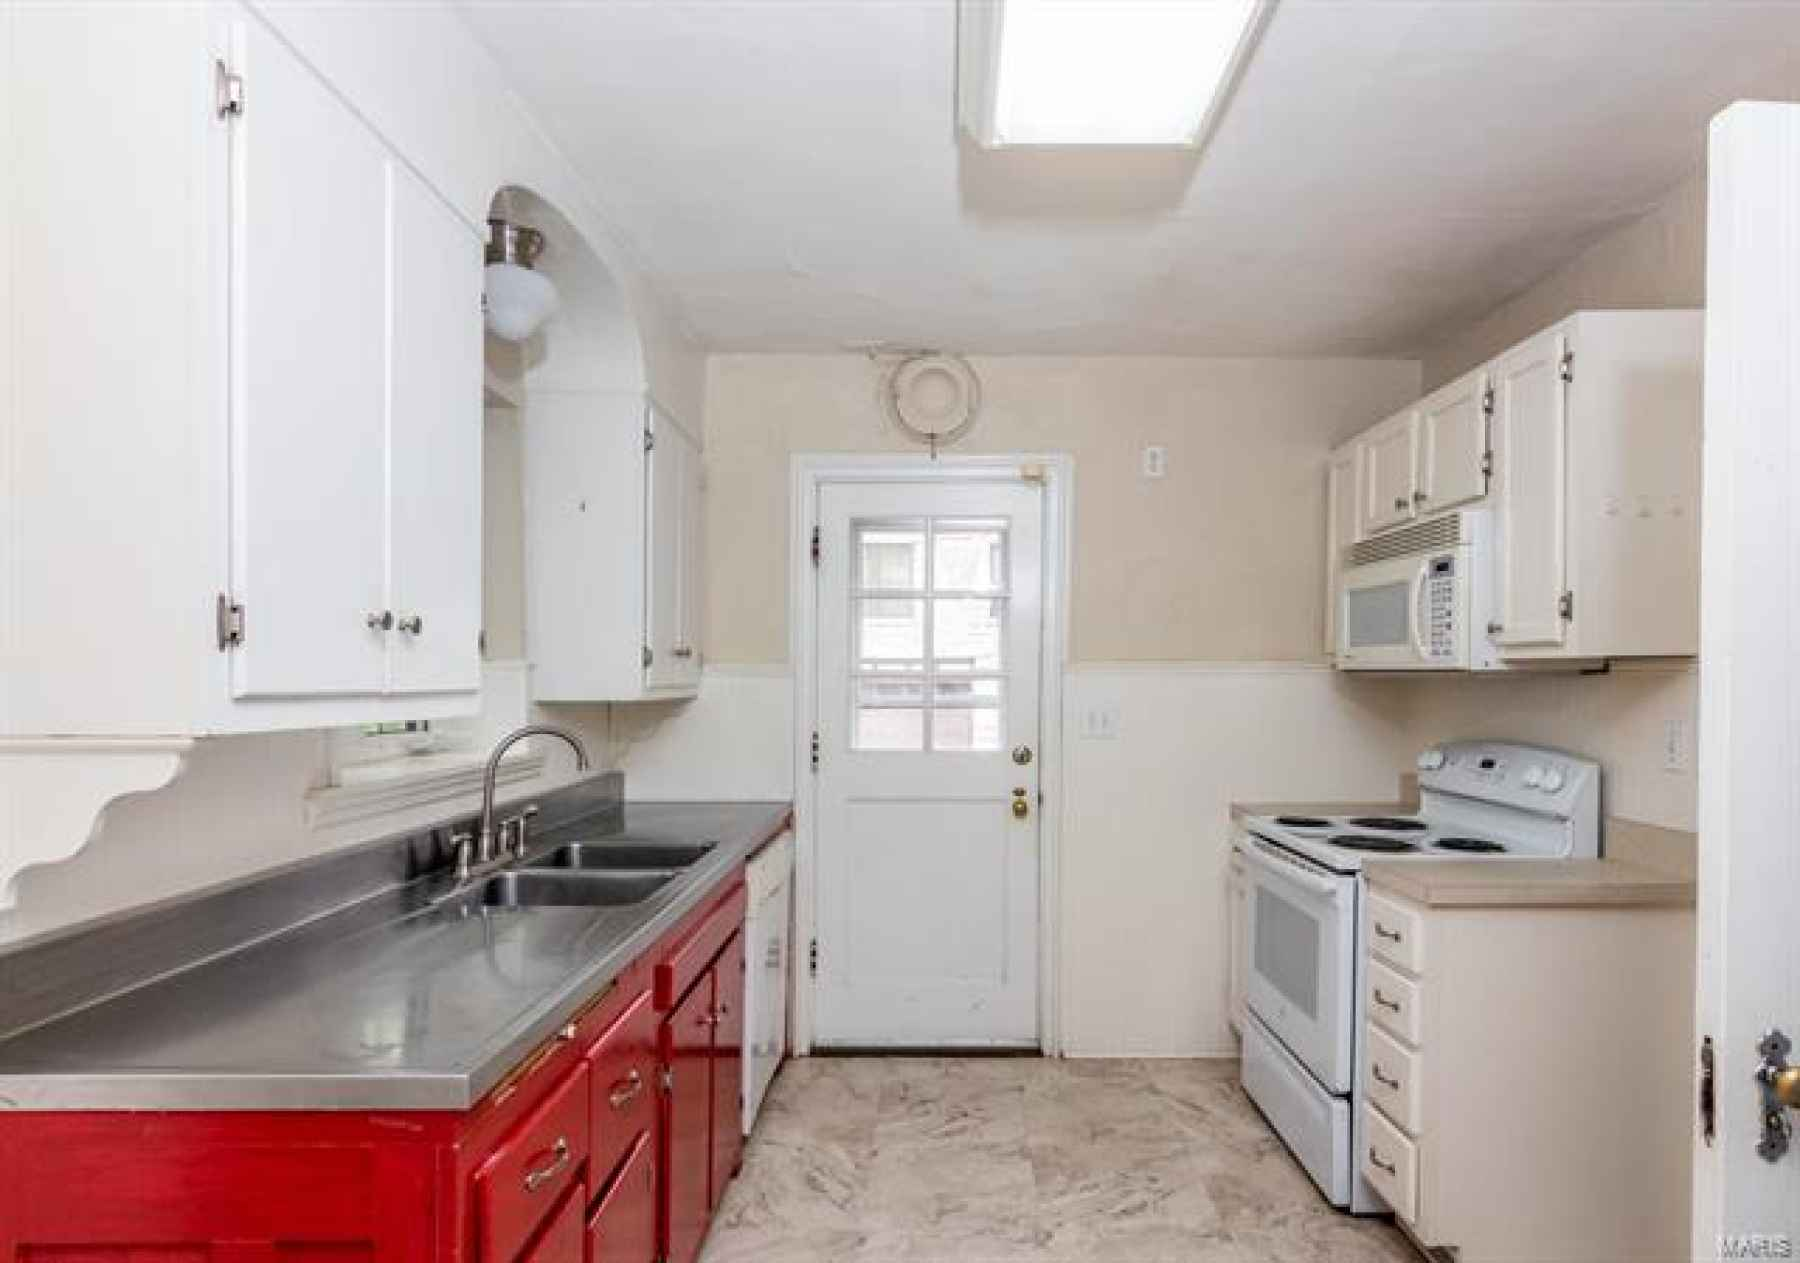 Kitchen Access from Dining Room or Hallway - Also leads to side of the house